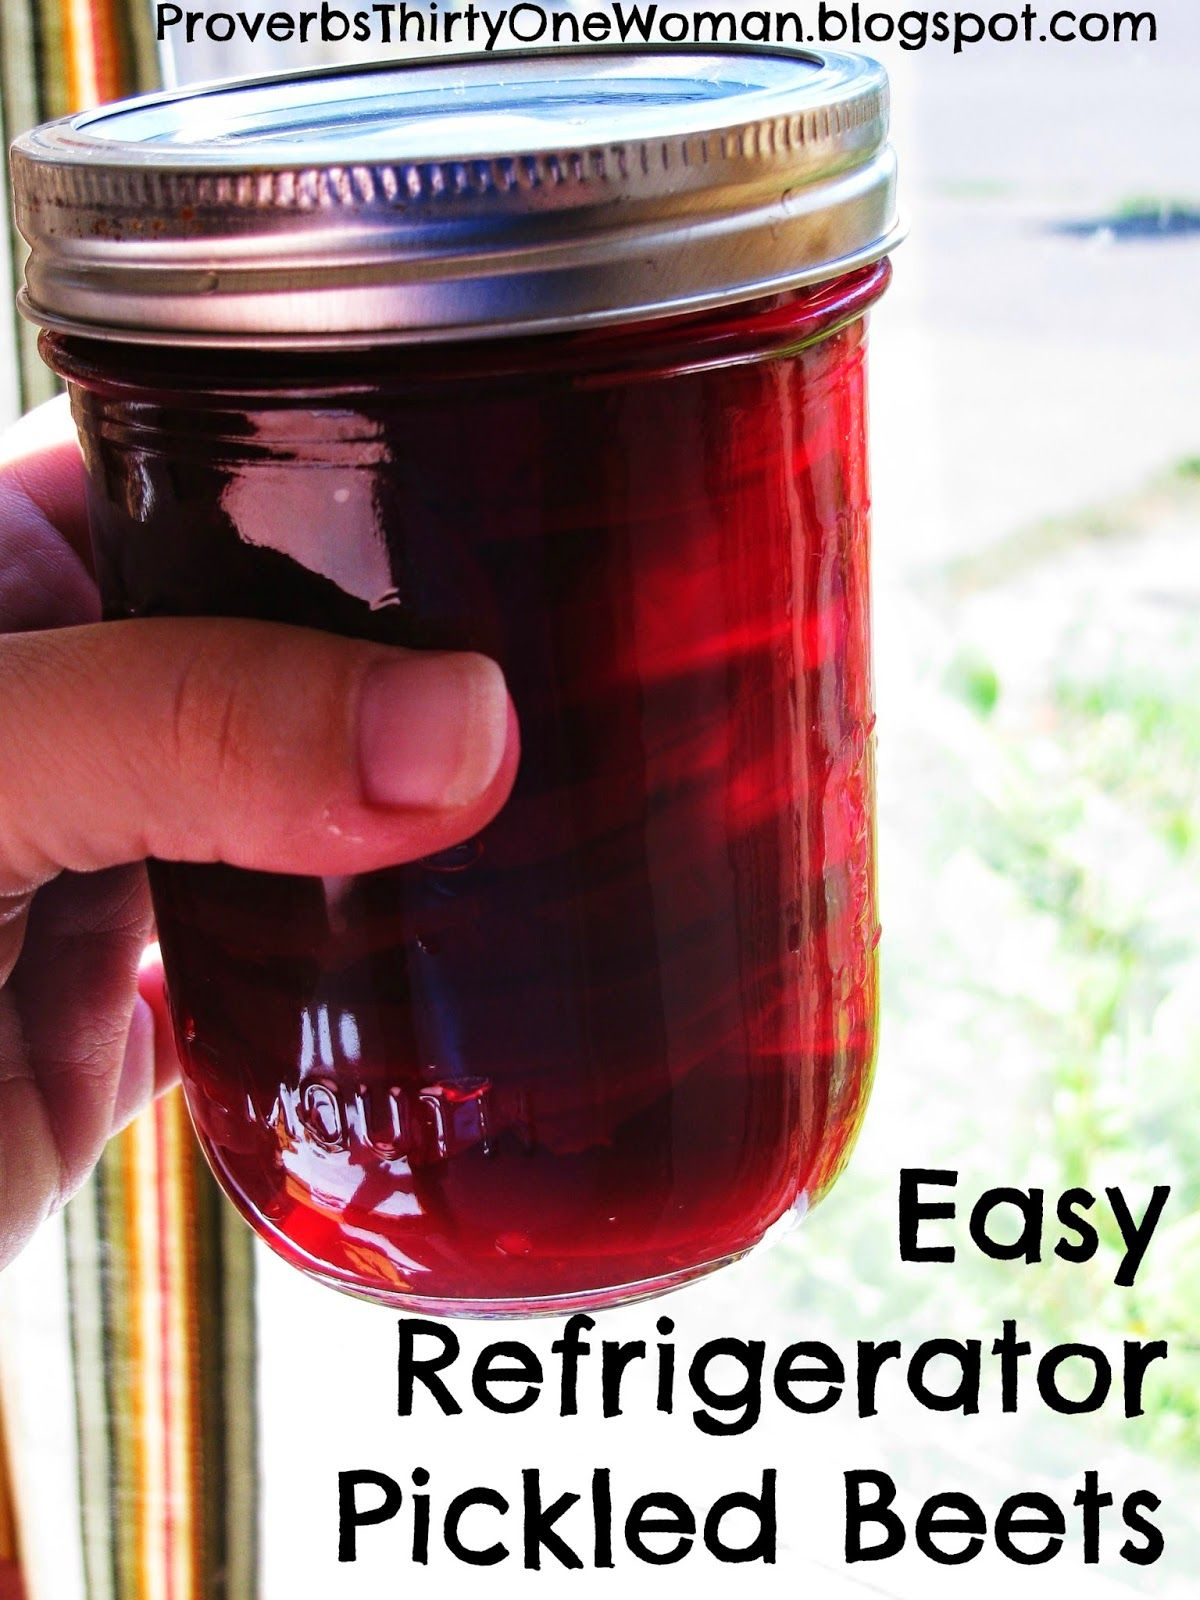 Easy Refrigerator Pickled Beets | Canning & Preserving